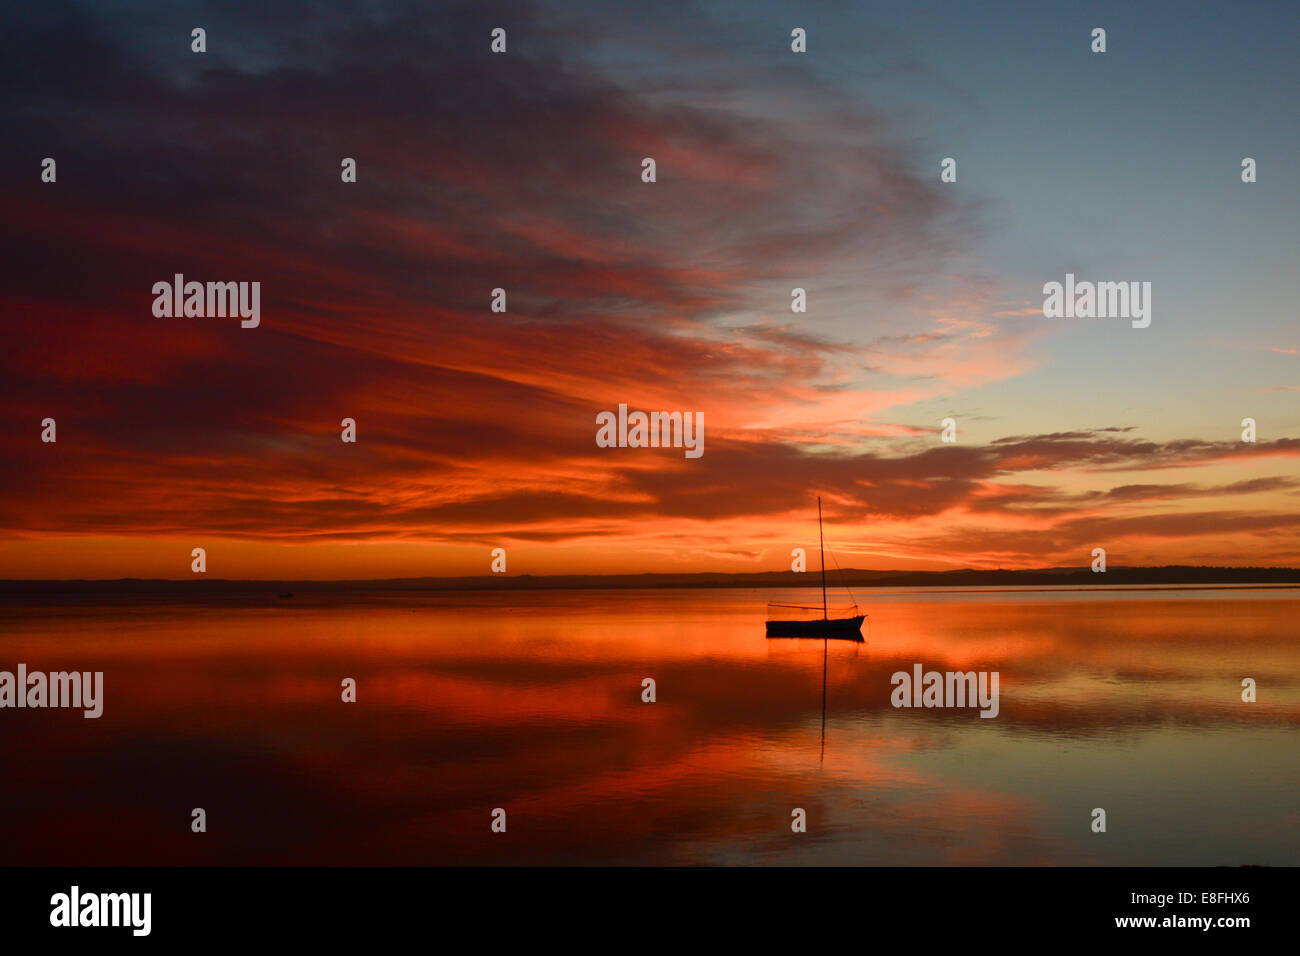 View of boat at sunset - Stock Image